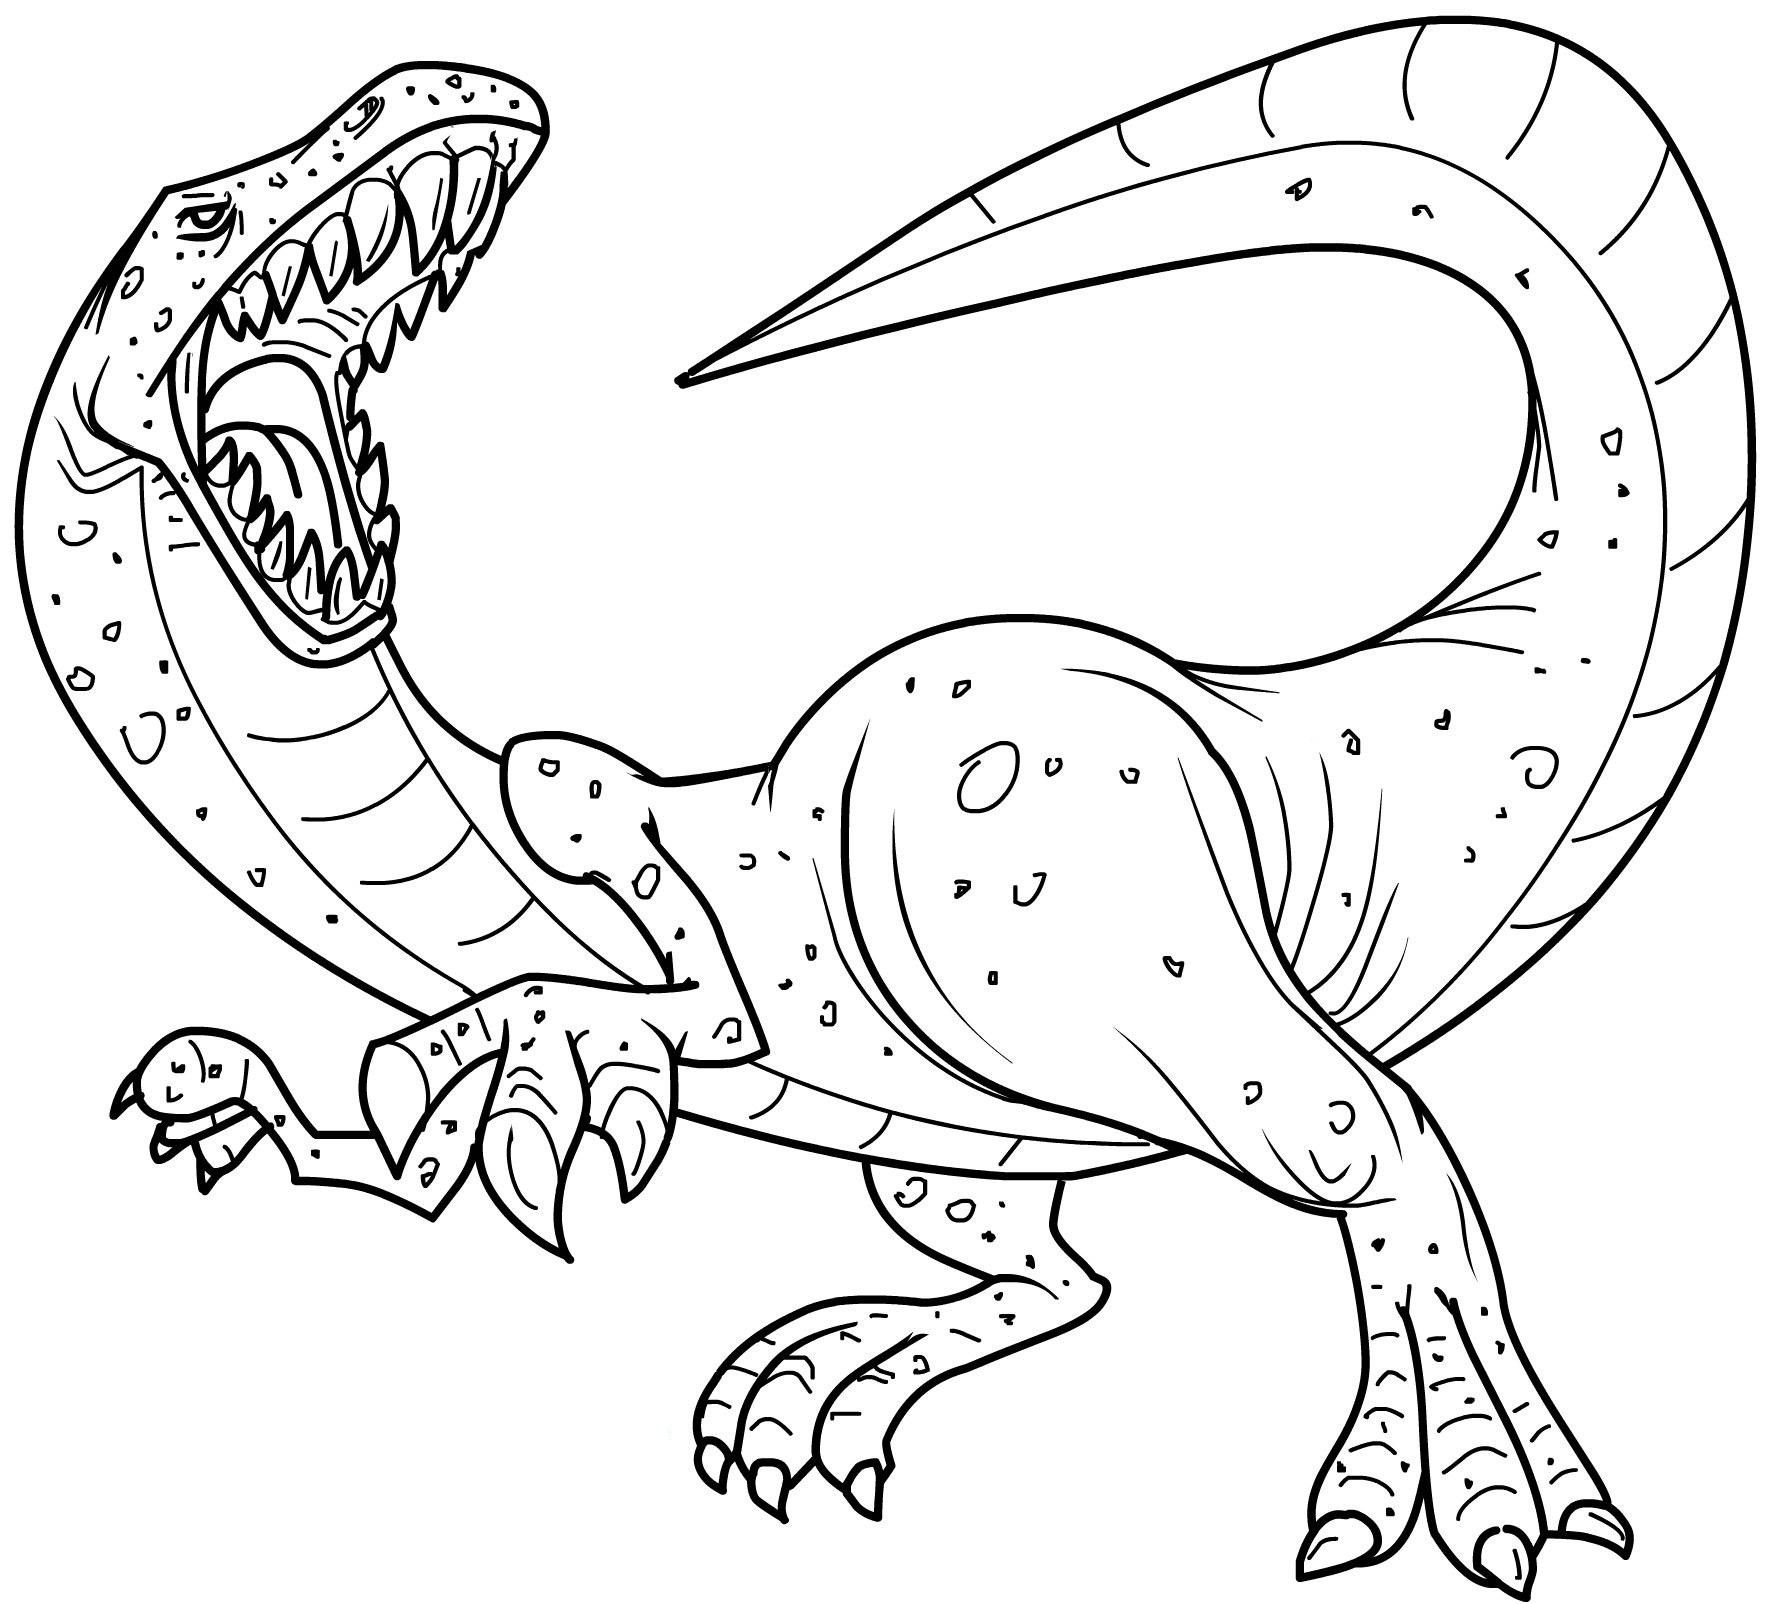 pumpkin coloring pages free printable coloring pages - Dinosaurs Coloring Pages Print